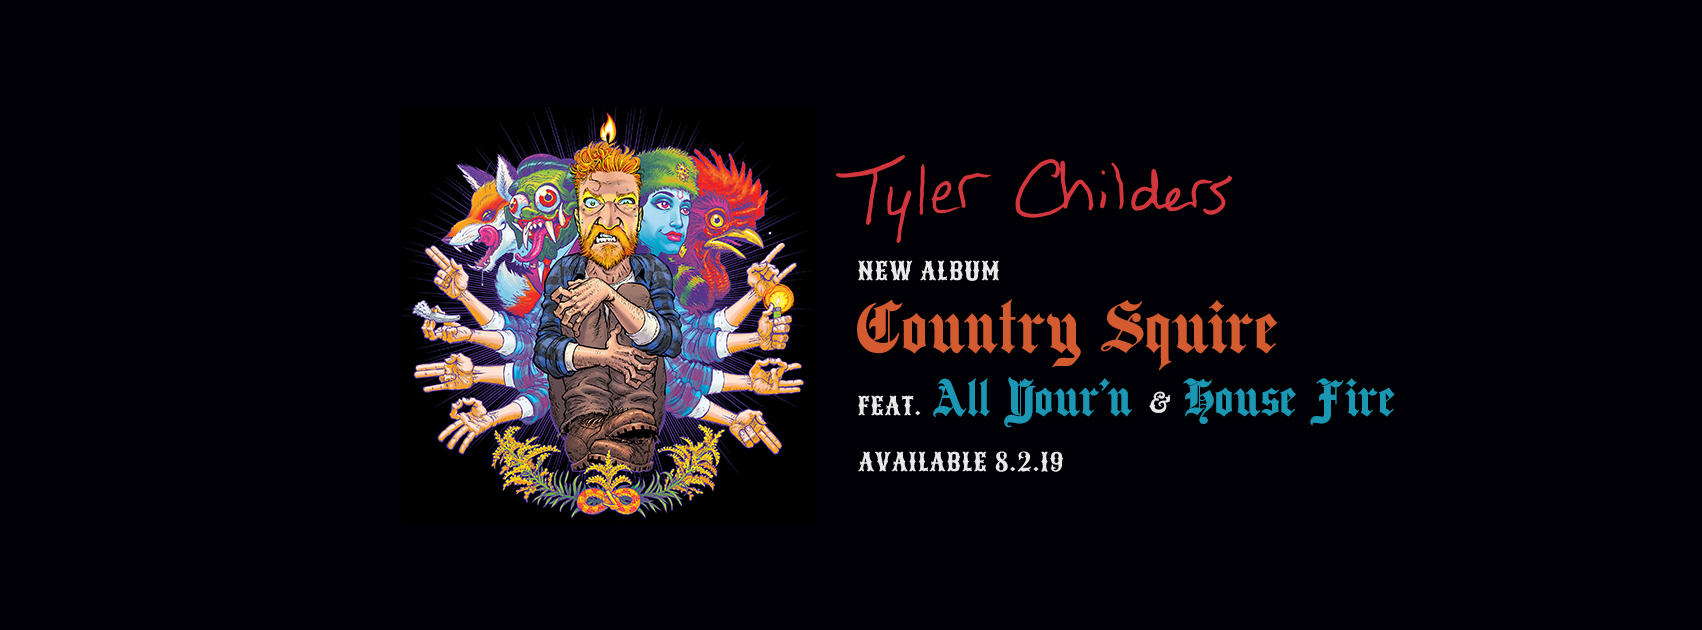 "Tyler Childers' ""All Your'n"" premieres today"